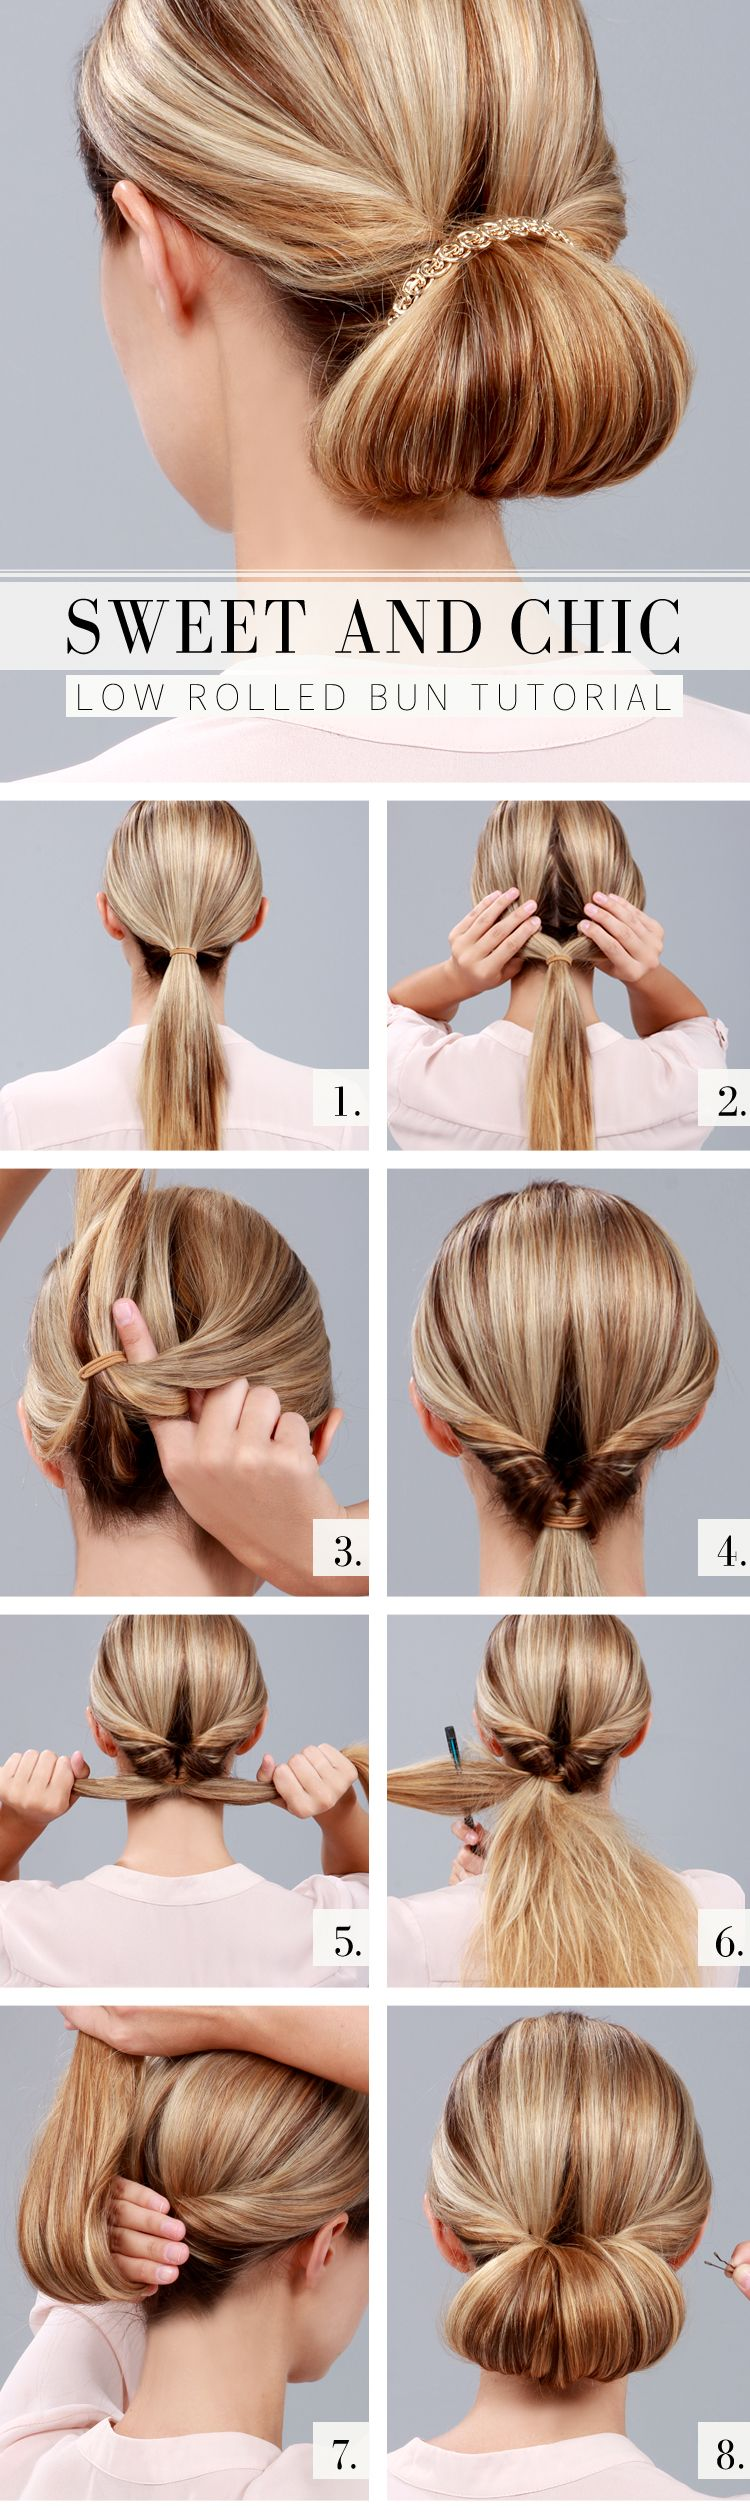 Lulus How To Chic Low Rolled Bun Tutorial Hair Inspiration Hair